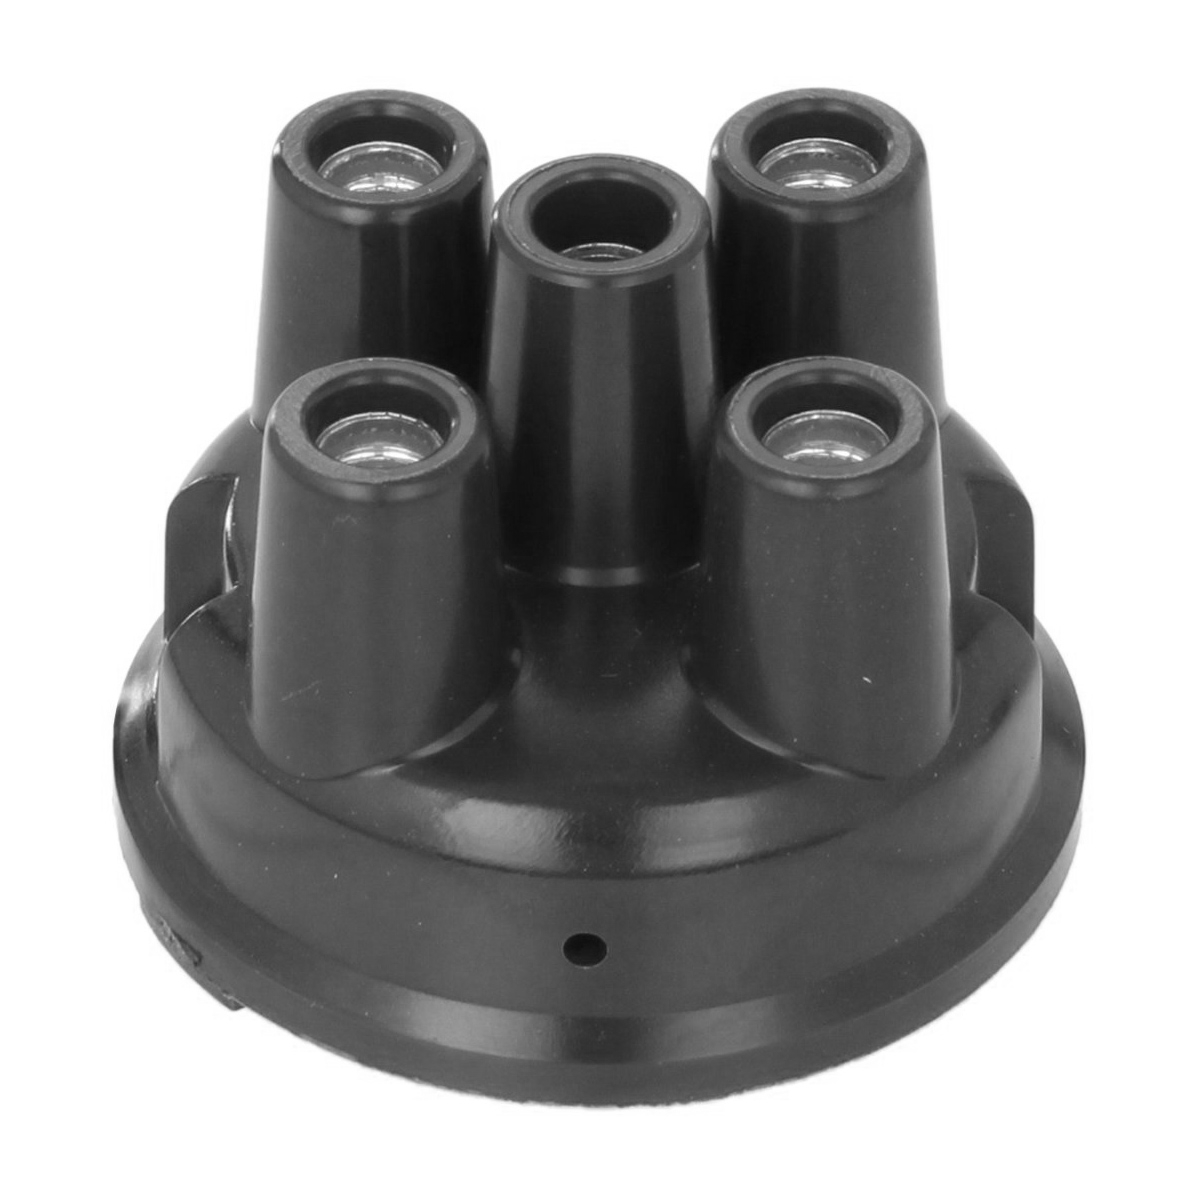 Ignition Control Unit Mounting Kit